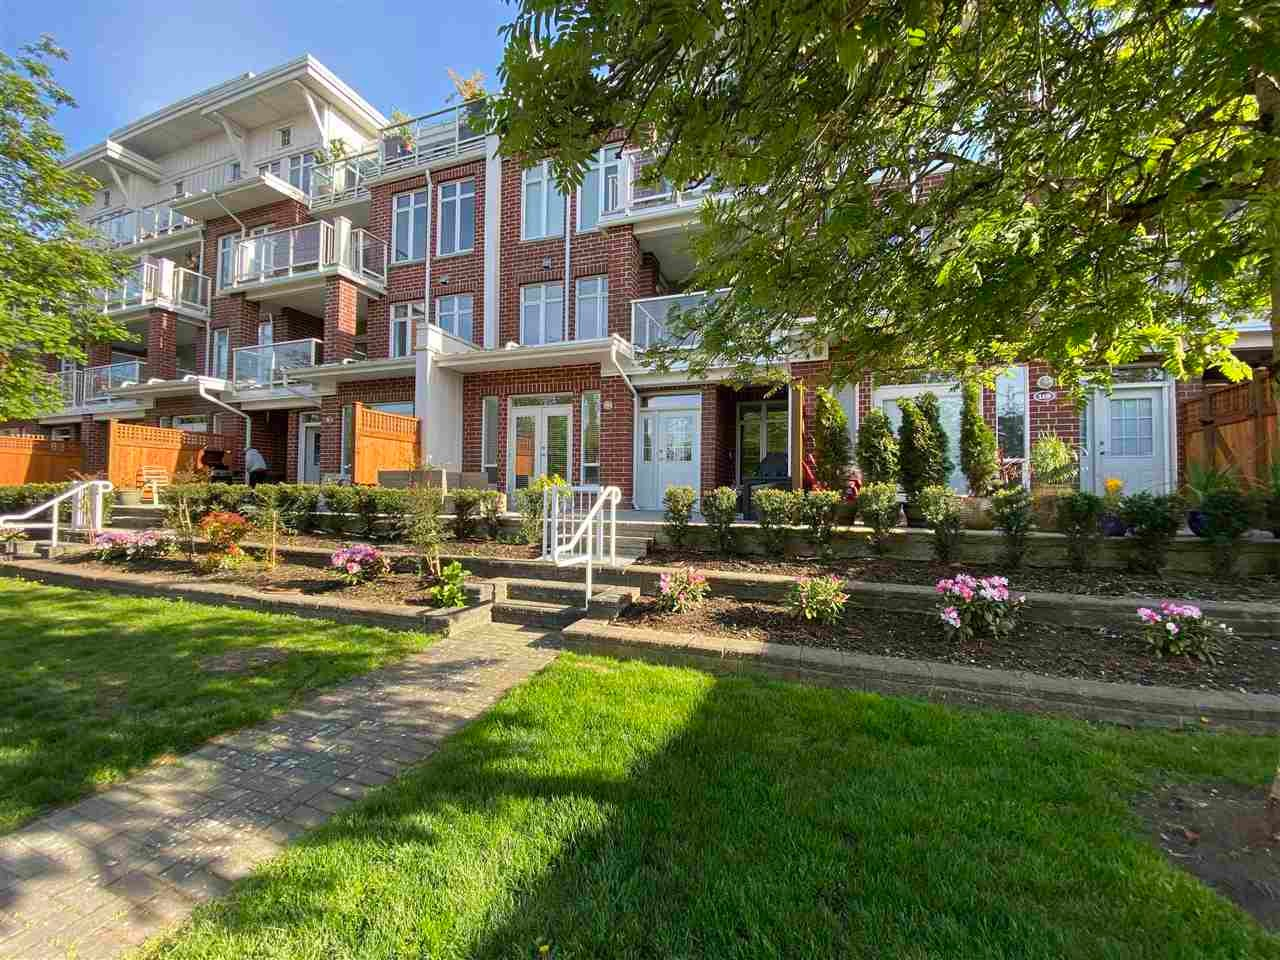 120 4280 MONCTON STREET - Steveston South Townhouse for sale, 2 Bedrooms (R2579286)